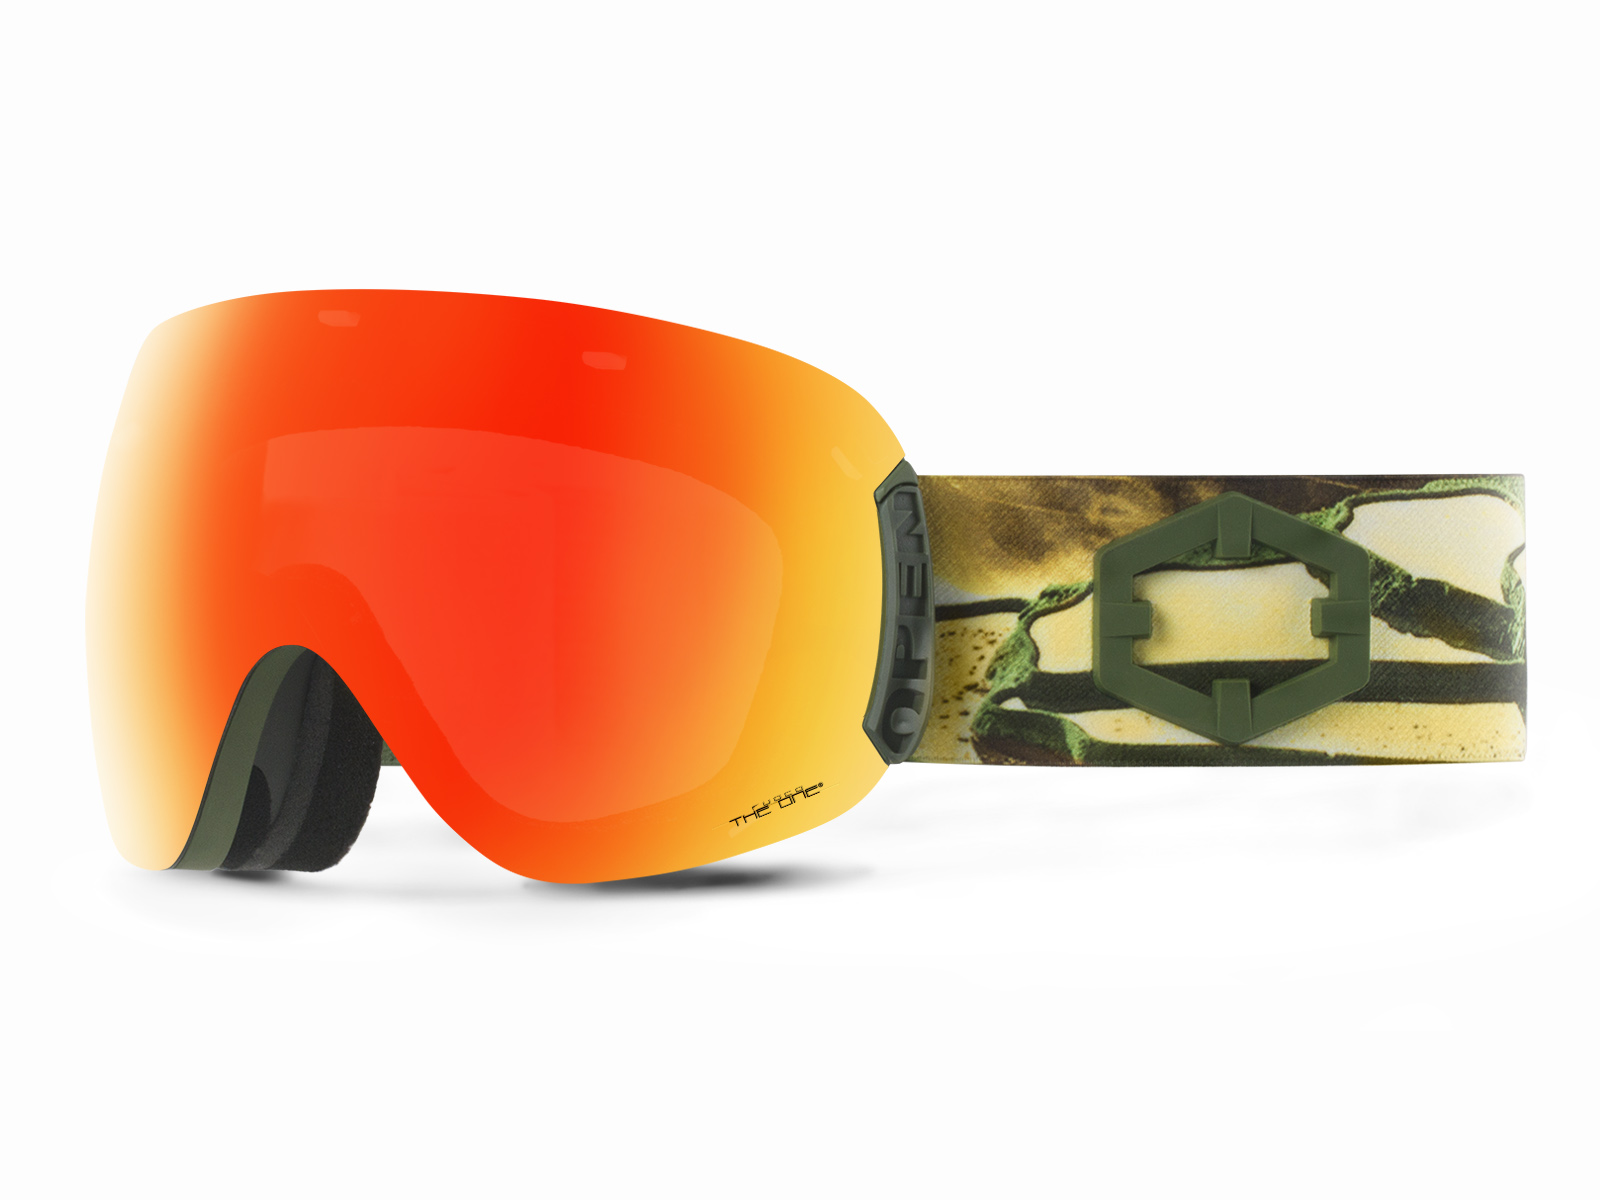 OPEN EASTERN GOLD THE ONE FUOCO GOGGLE